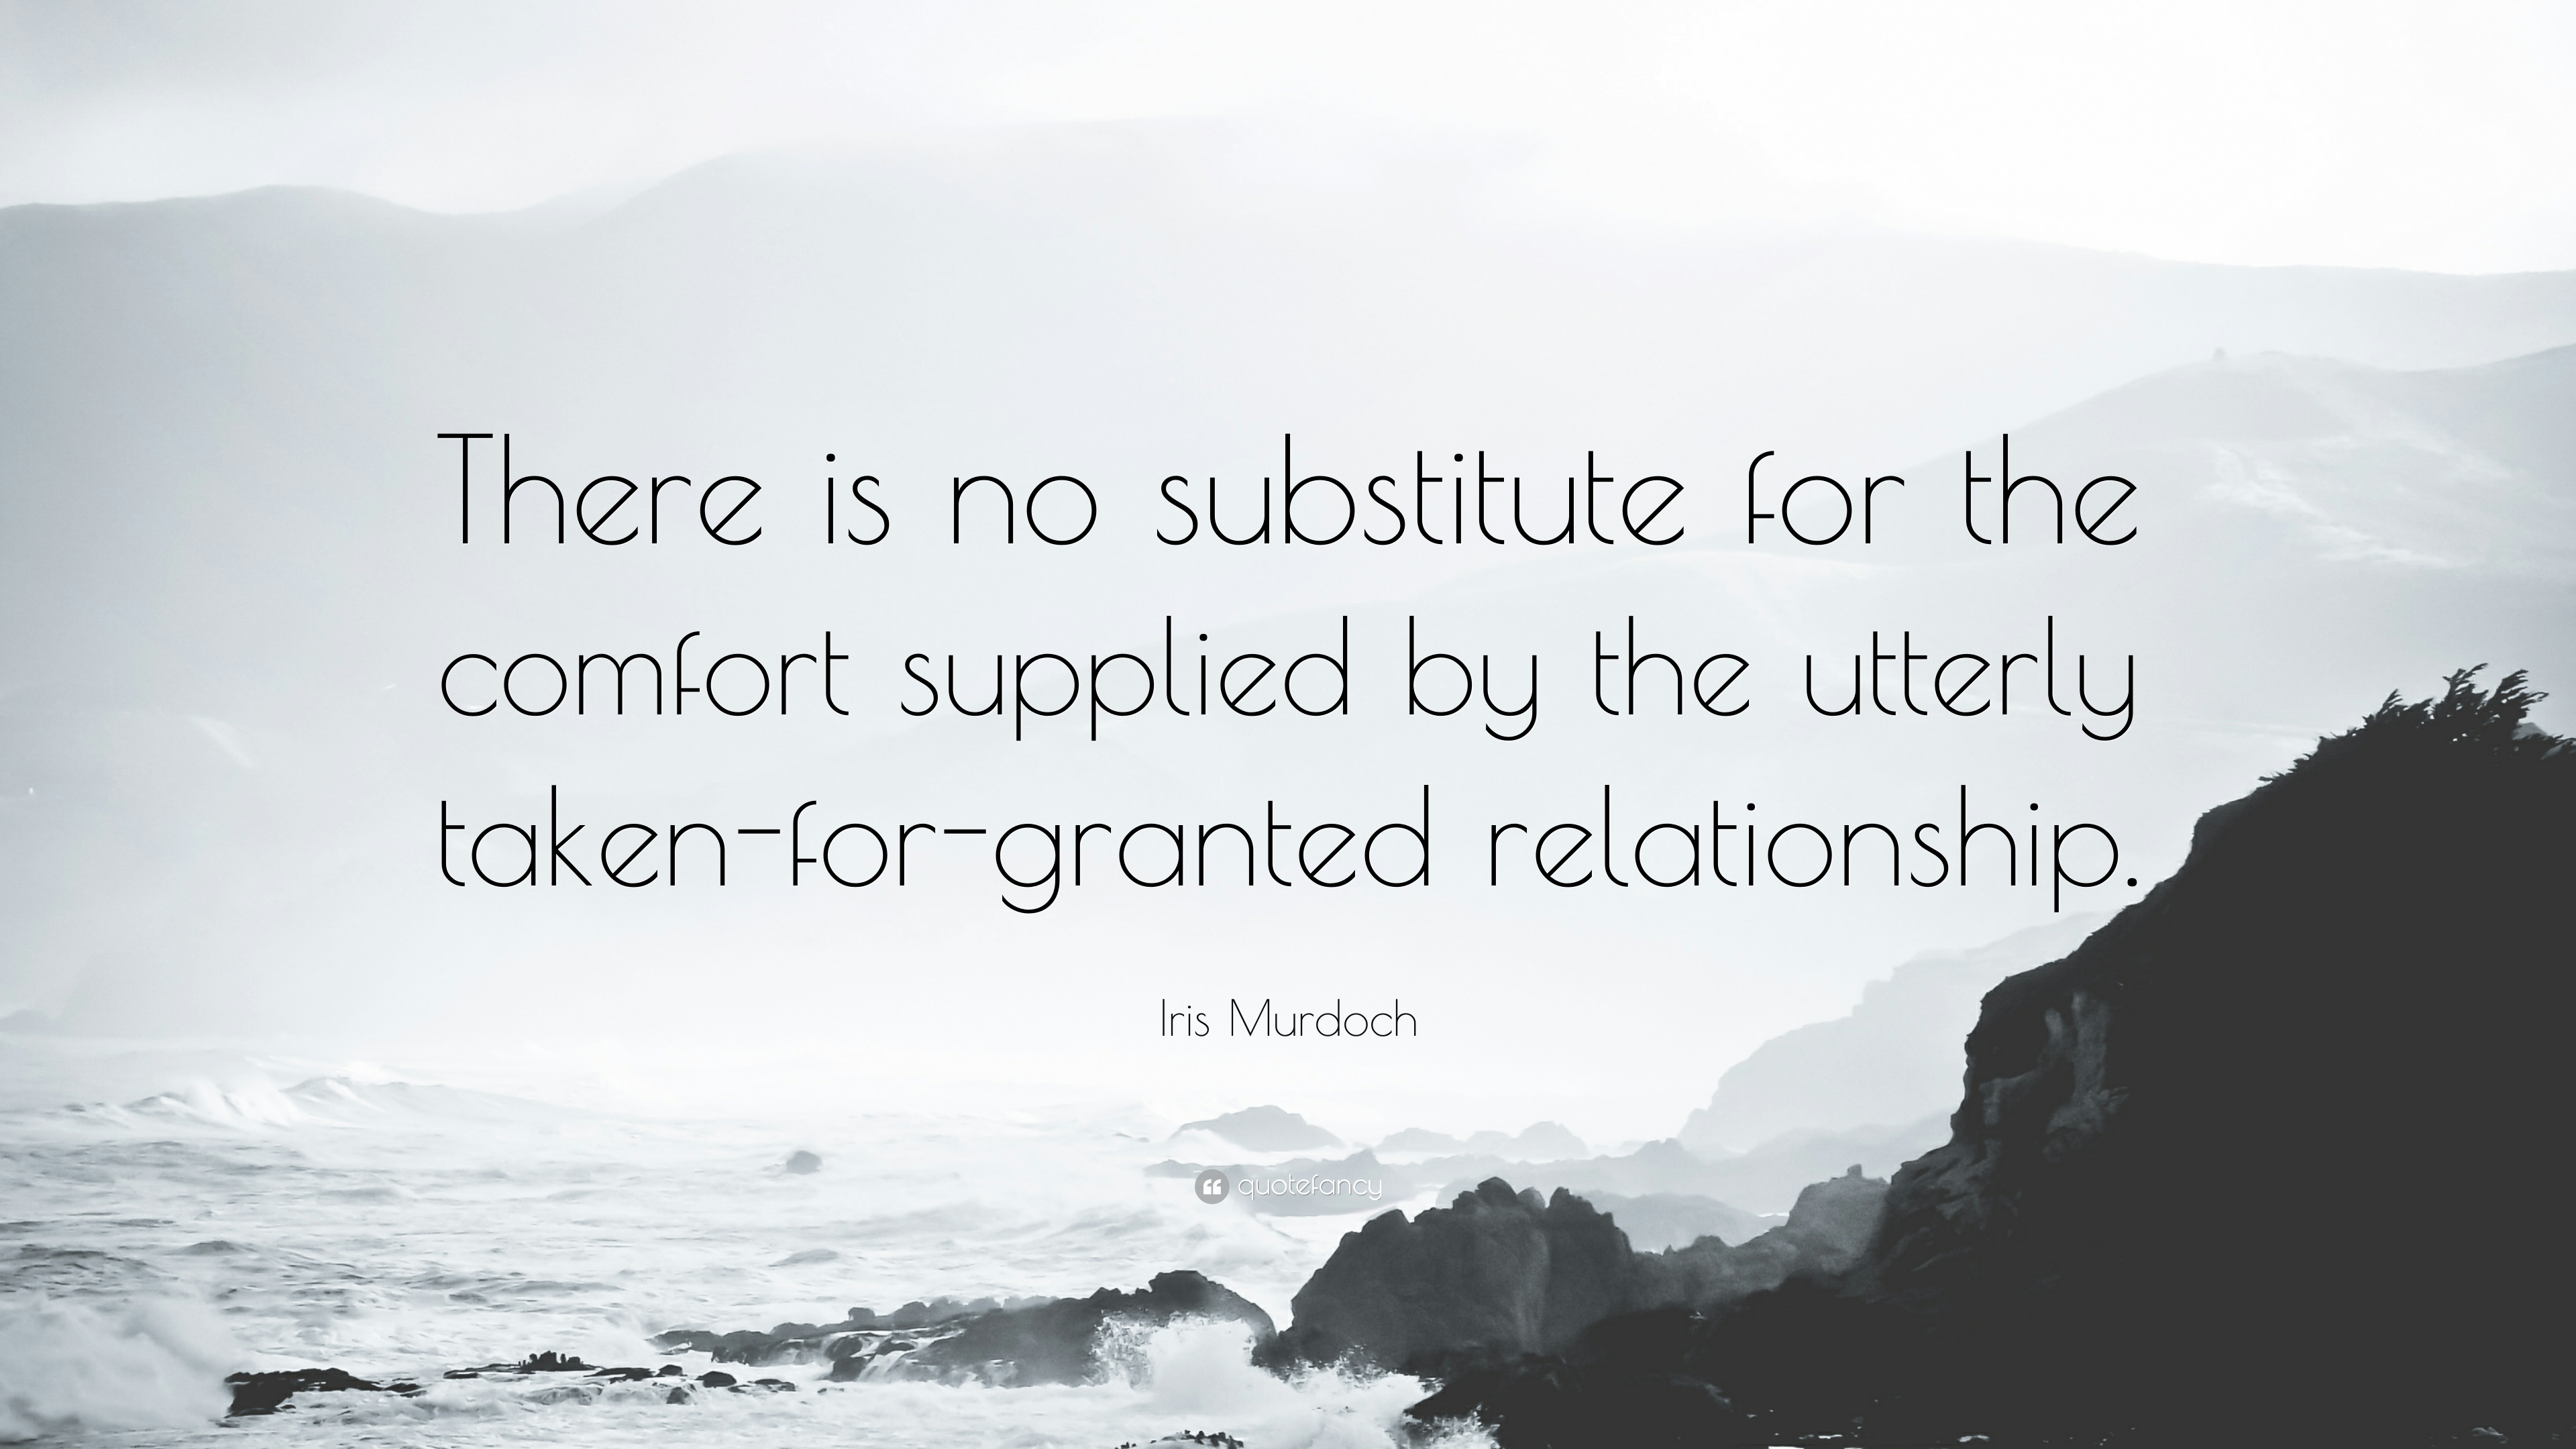 The Best and Most Comprehensive Quotes About Taken For Granted Relationship